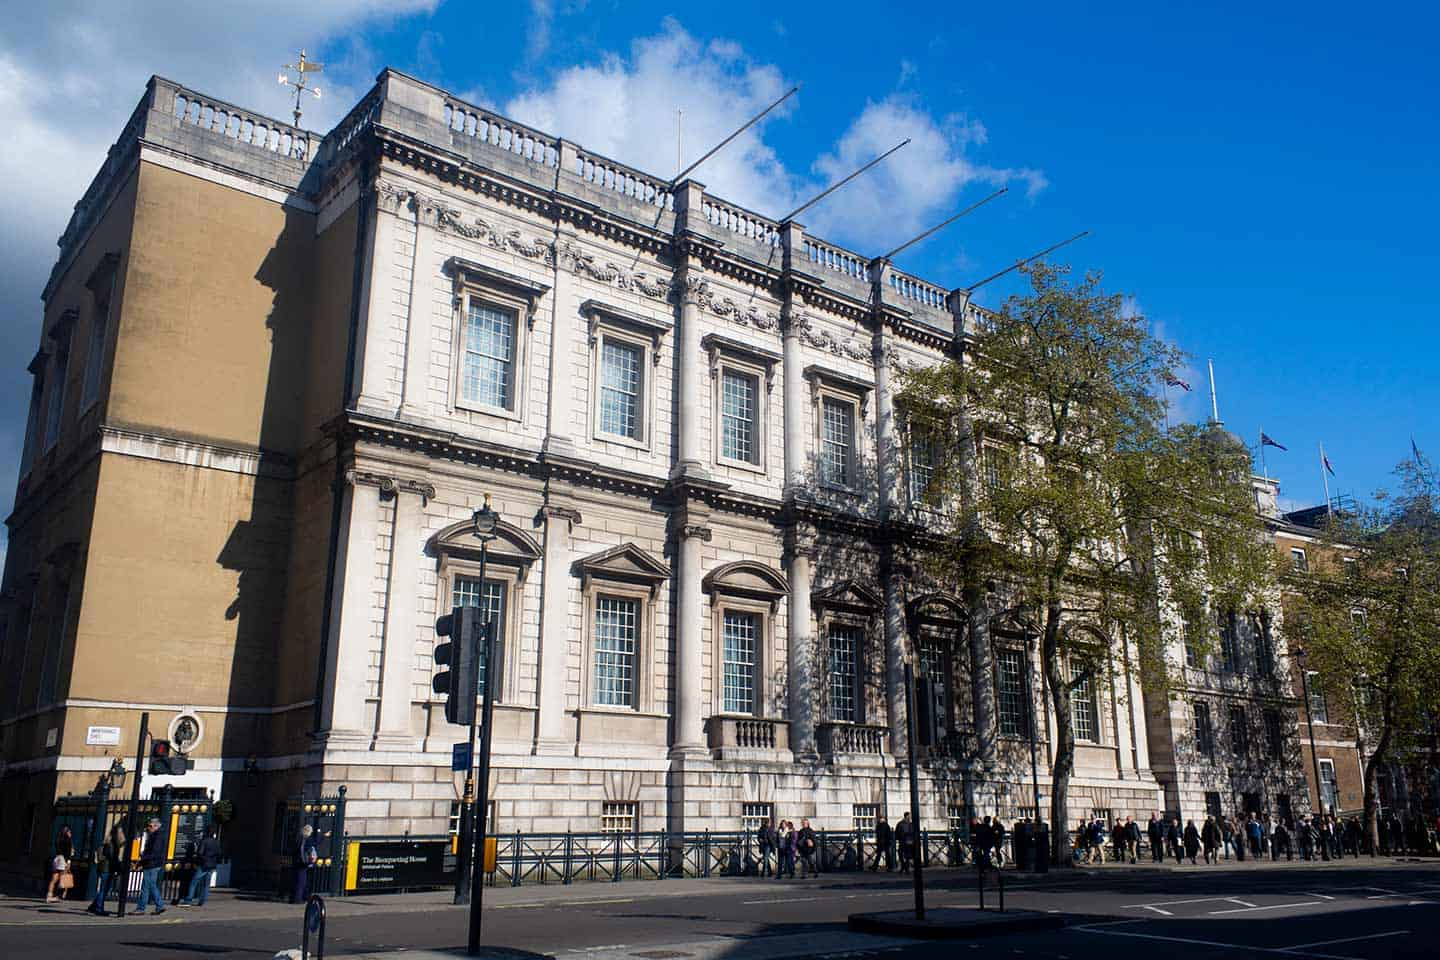 Image of Banqueting House in whitehall, London